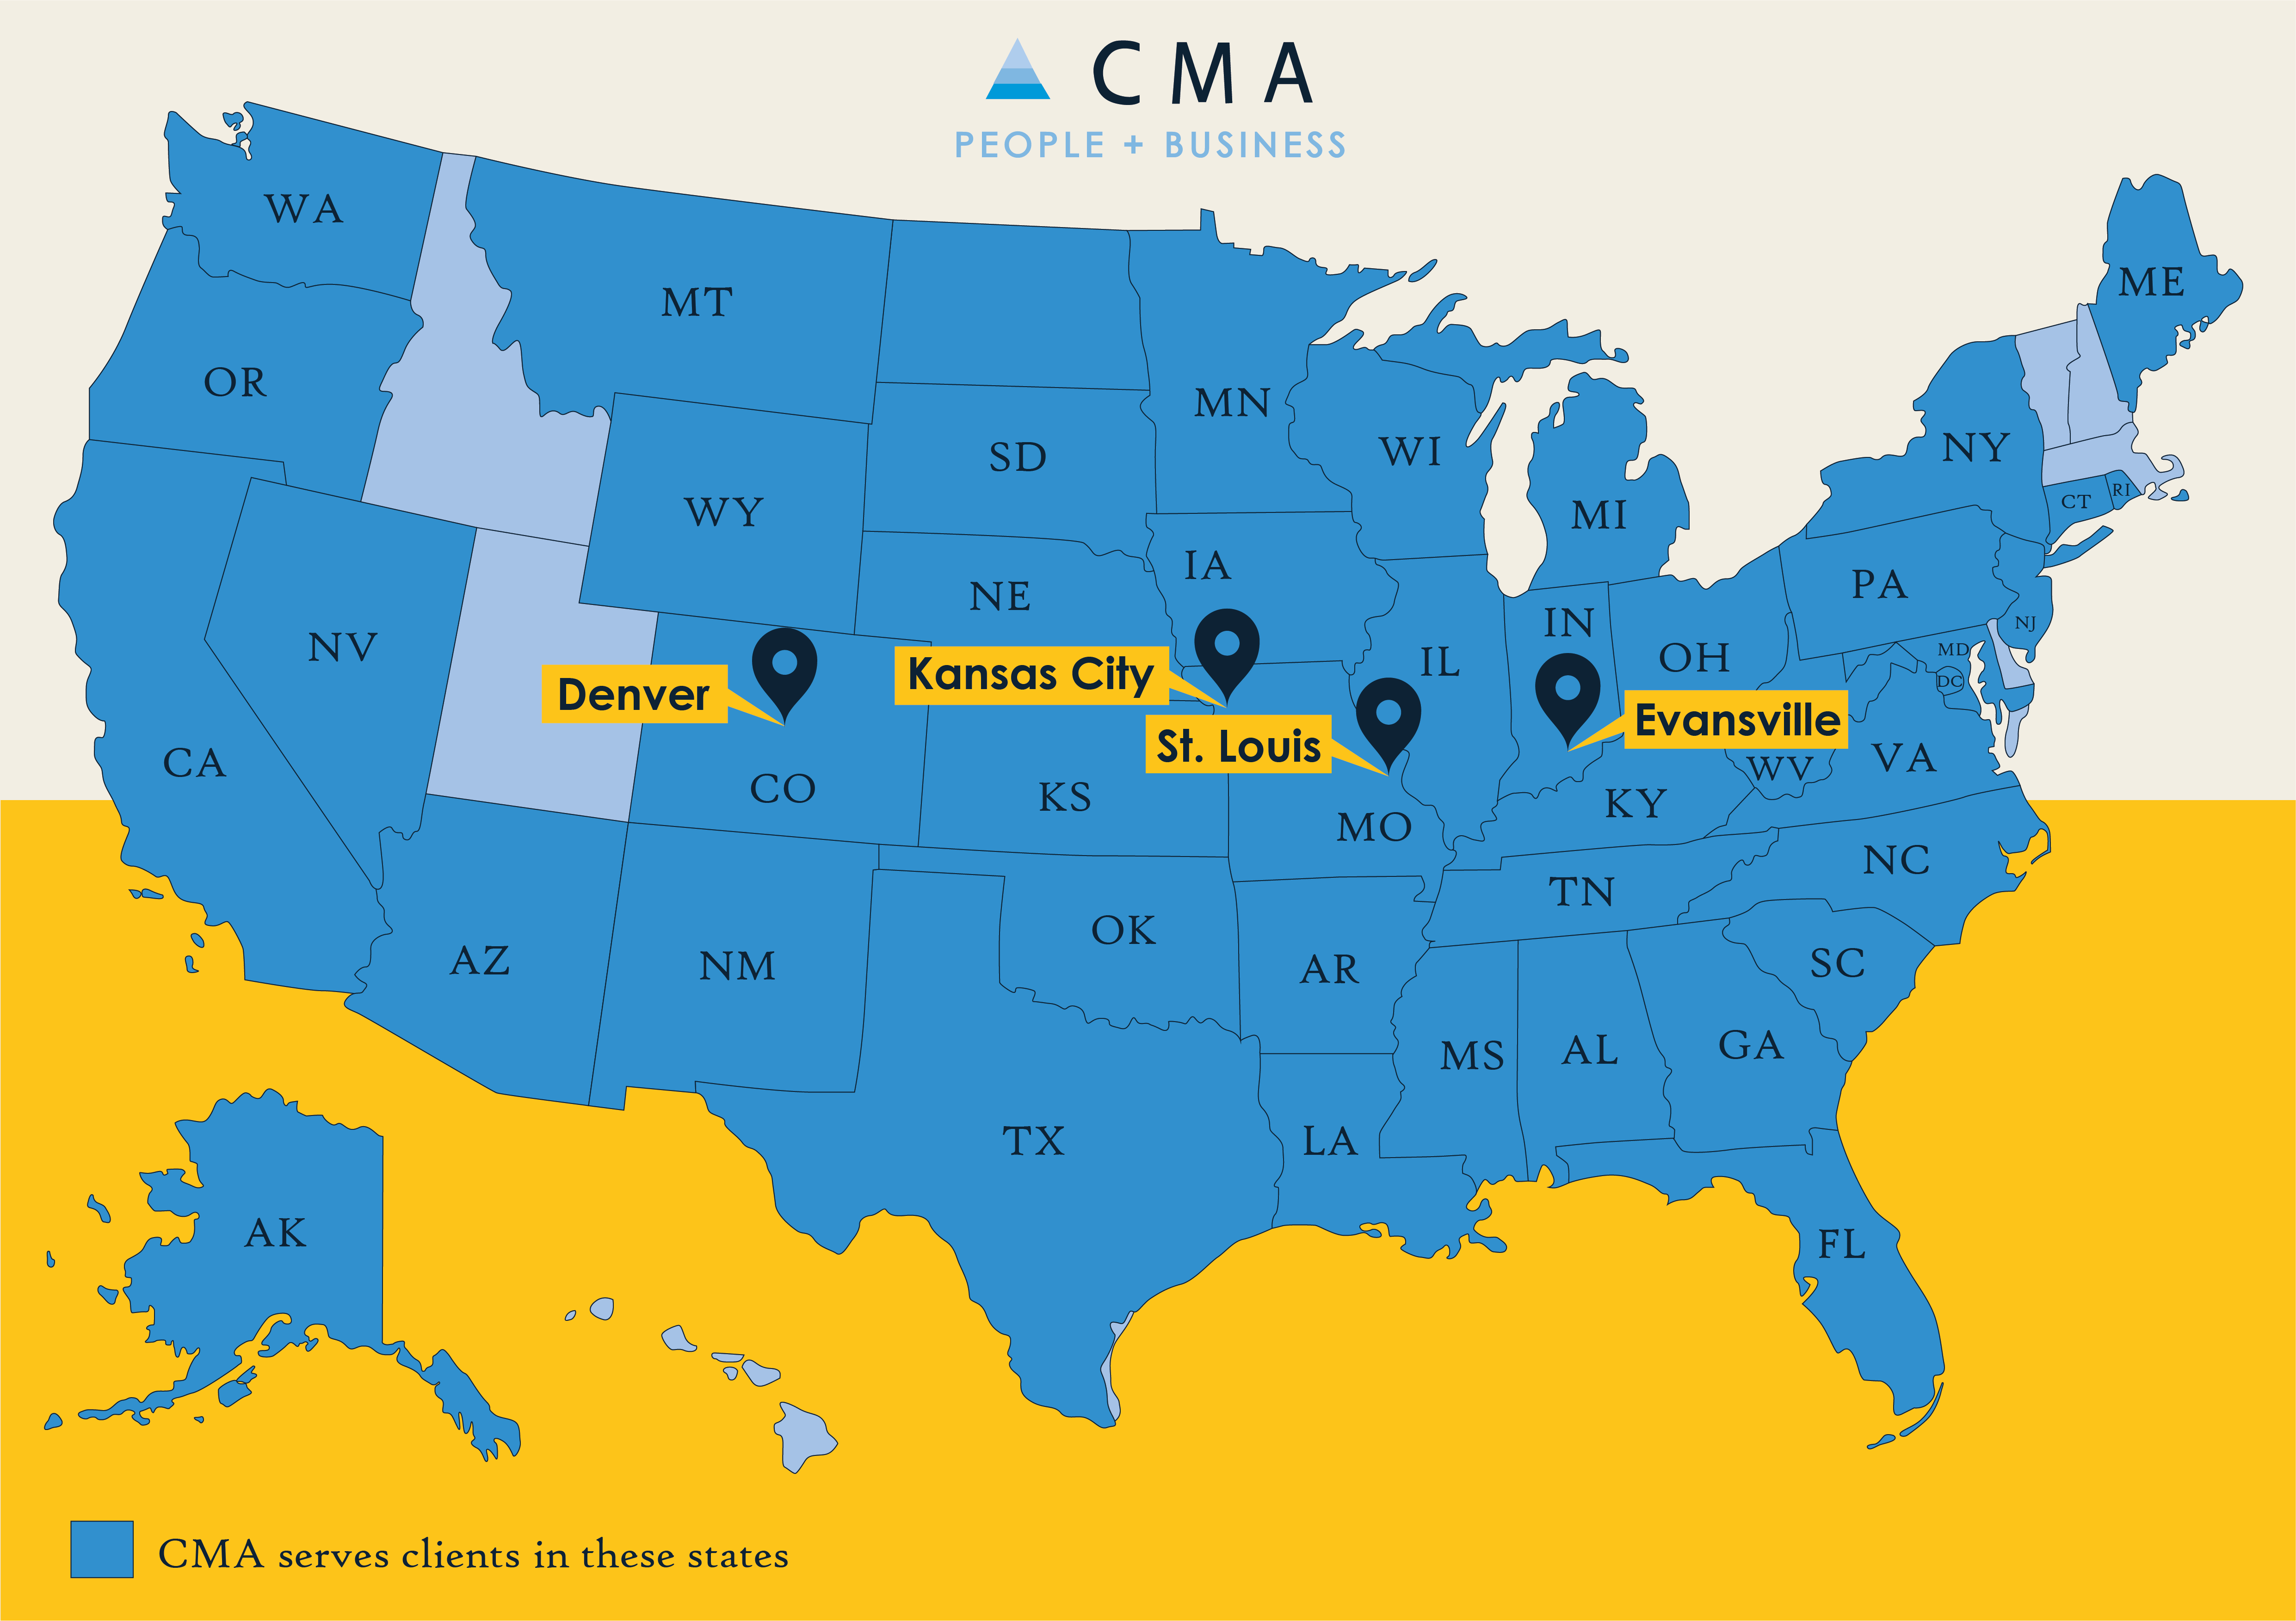 Us Map Revised Vesion A Another Cma - St-louis-us-map